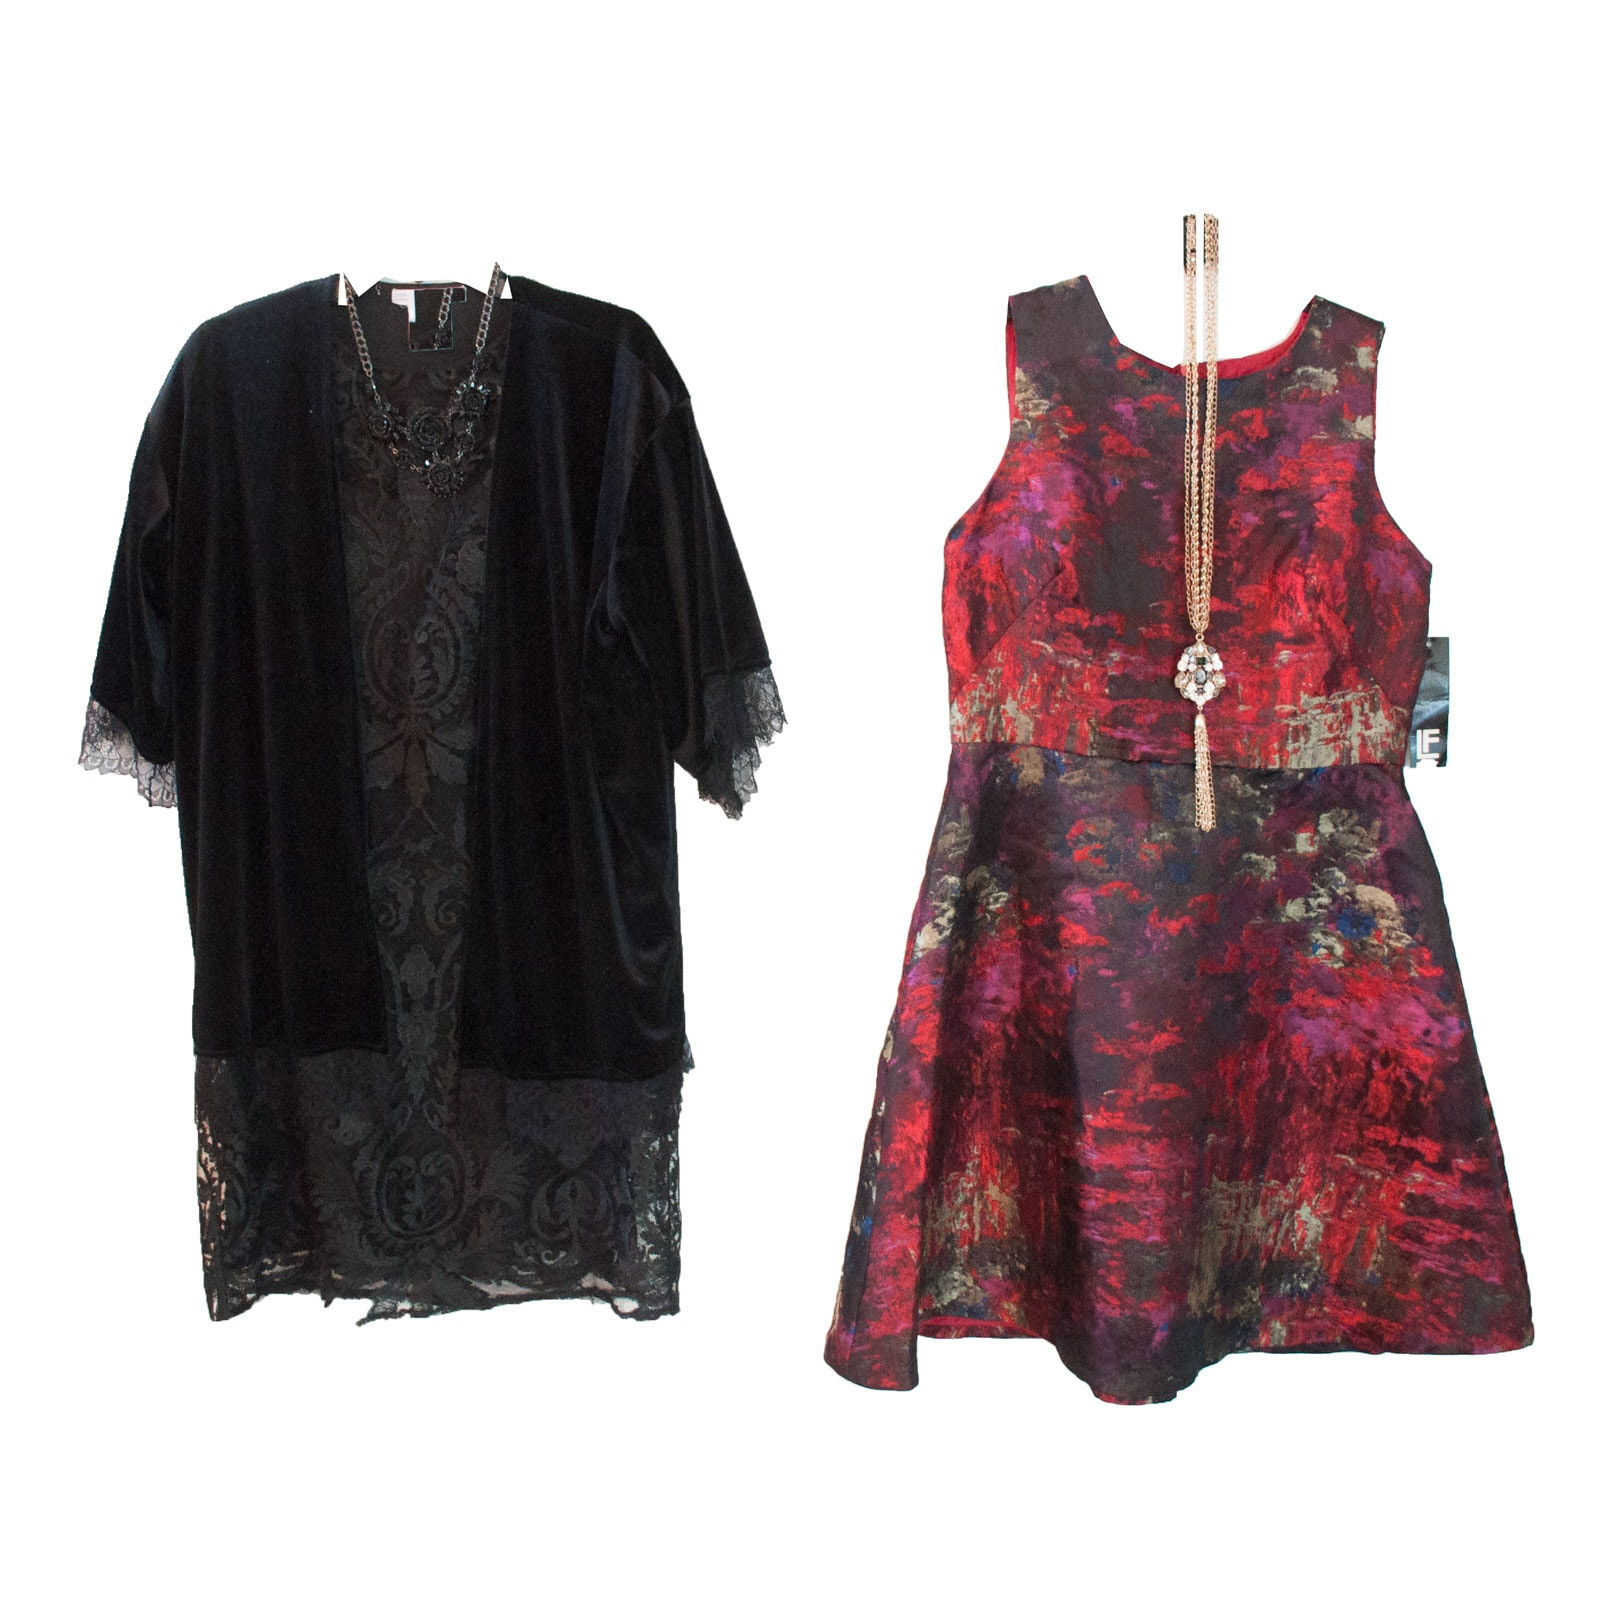 Leslie Fay Cocktail Dresses with BCBG Cardigan and Necklace